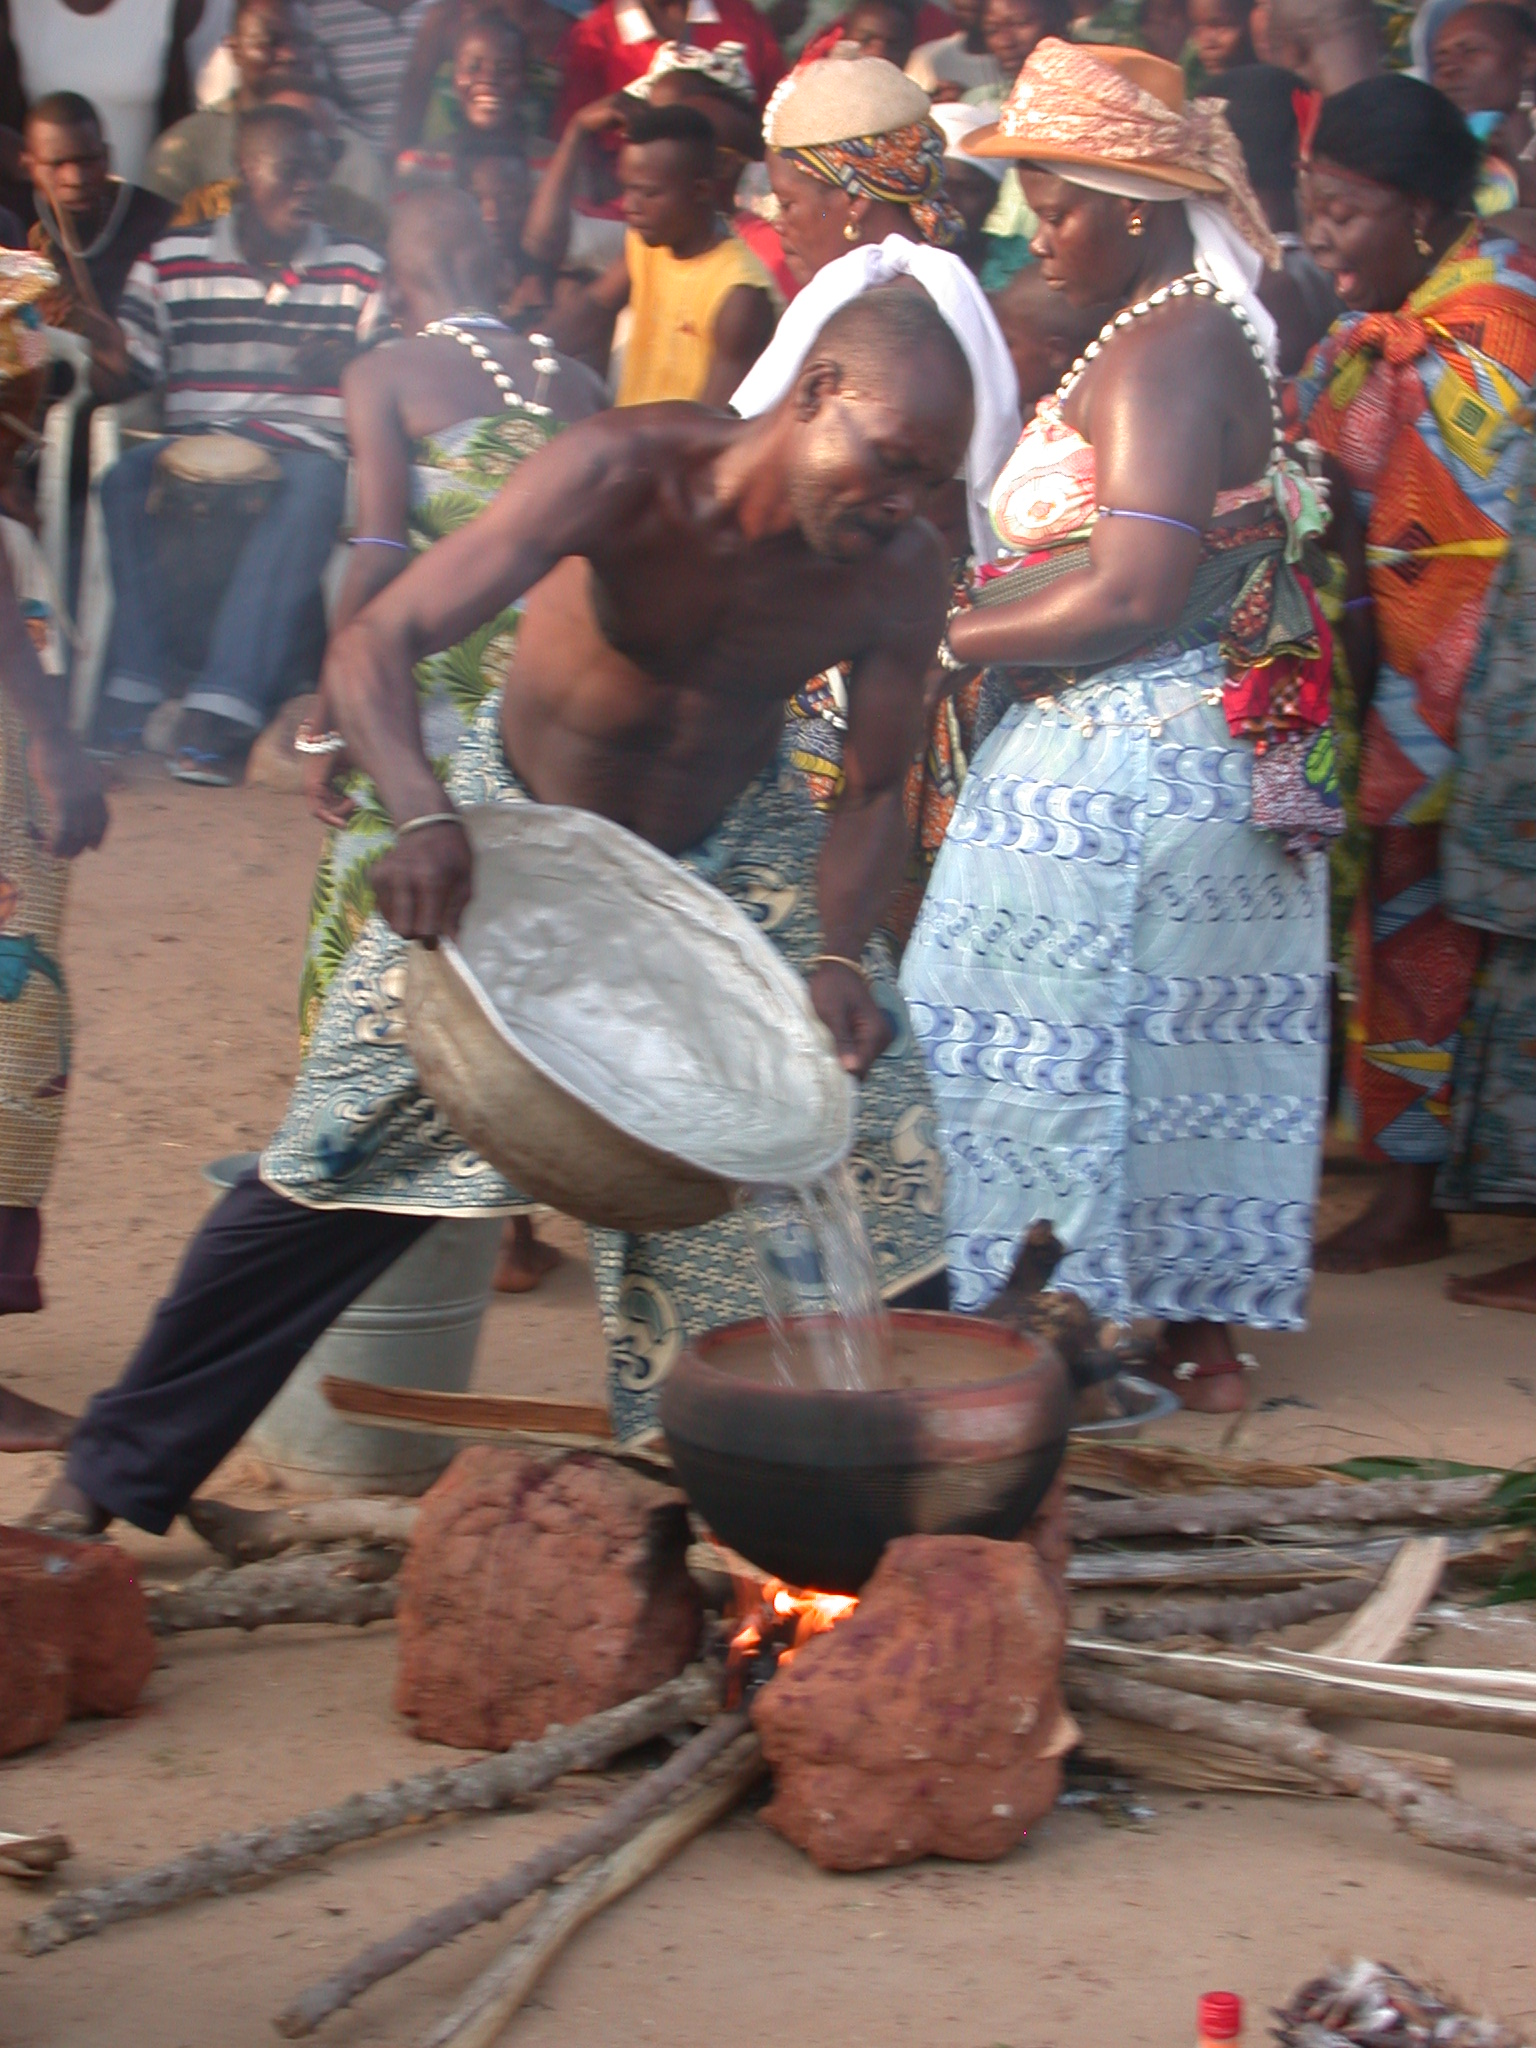 Adding Water to Cooking Sacrifice, Vodun Ritual, Ouidah, Benin